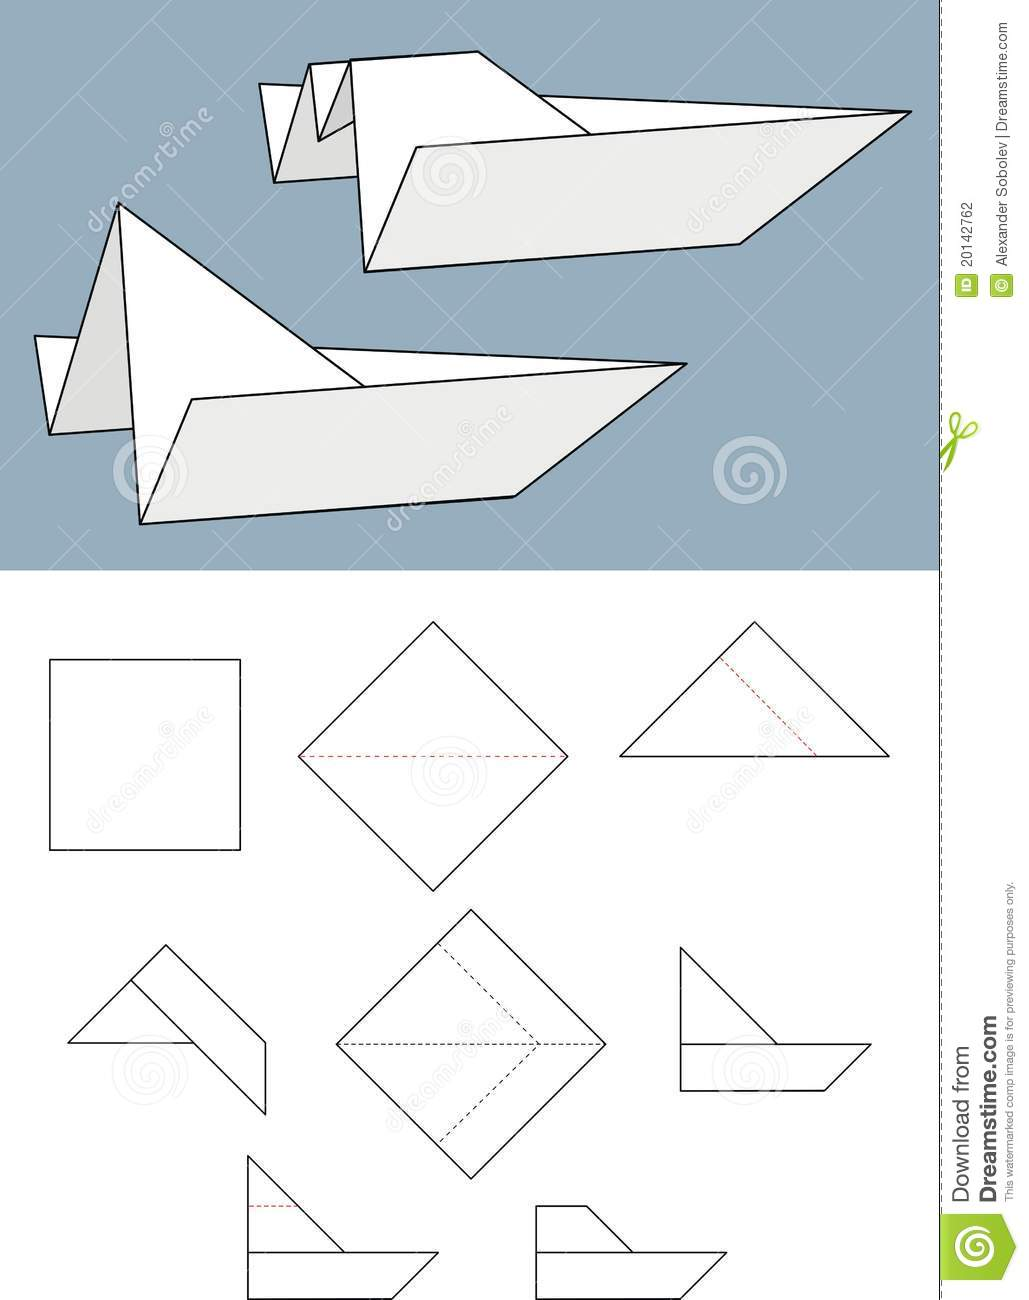 bateau de papier origami illustration de vecteur image 20142762. Black Bedroom Furniture Sets. Home Design Ideas